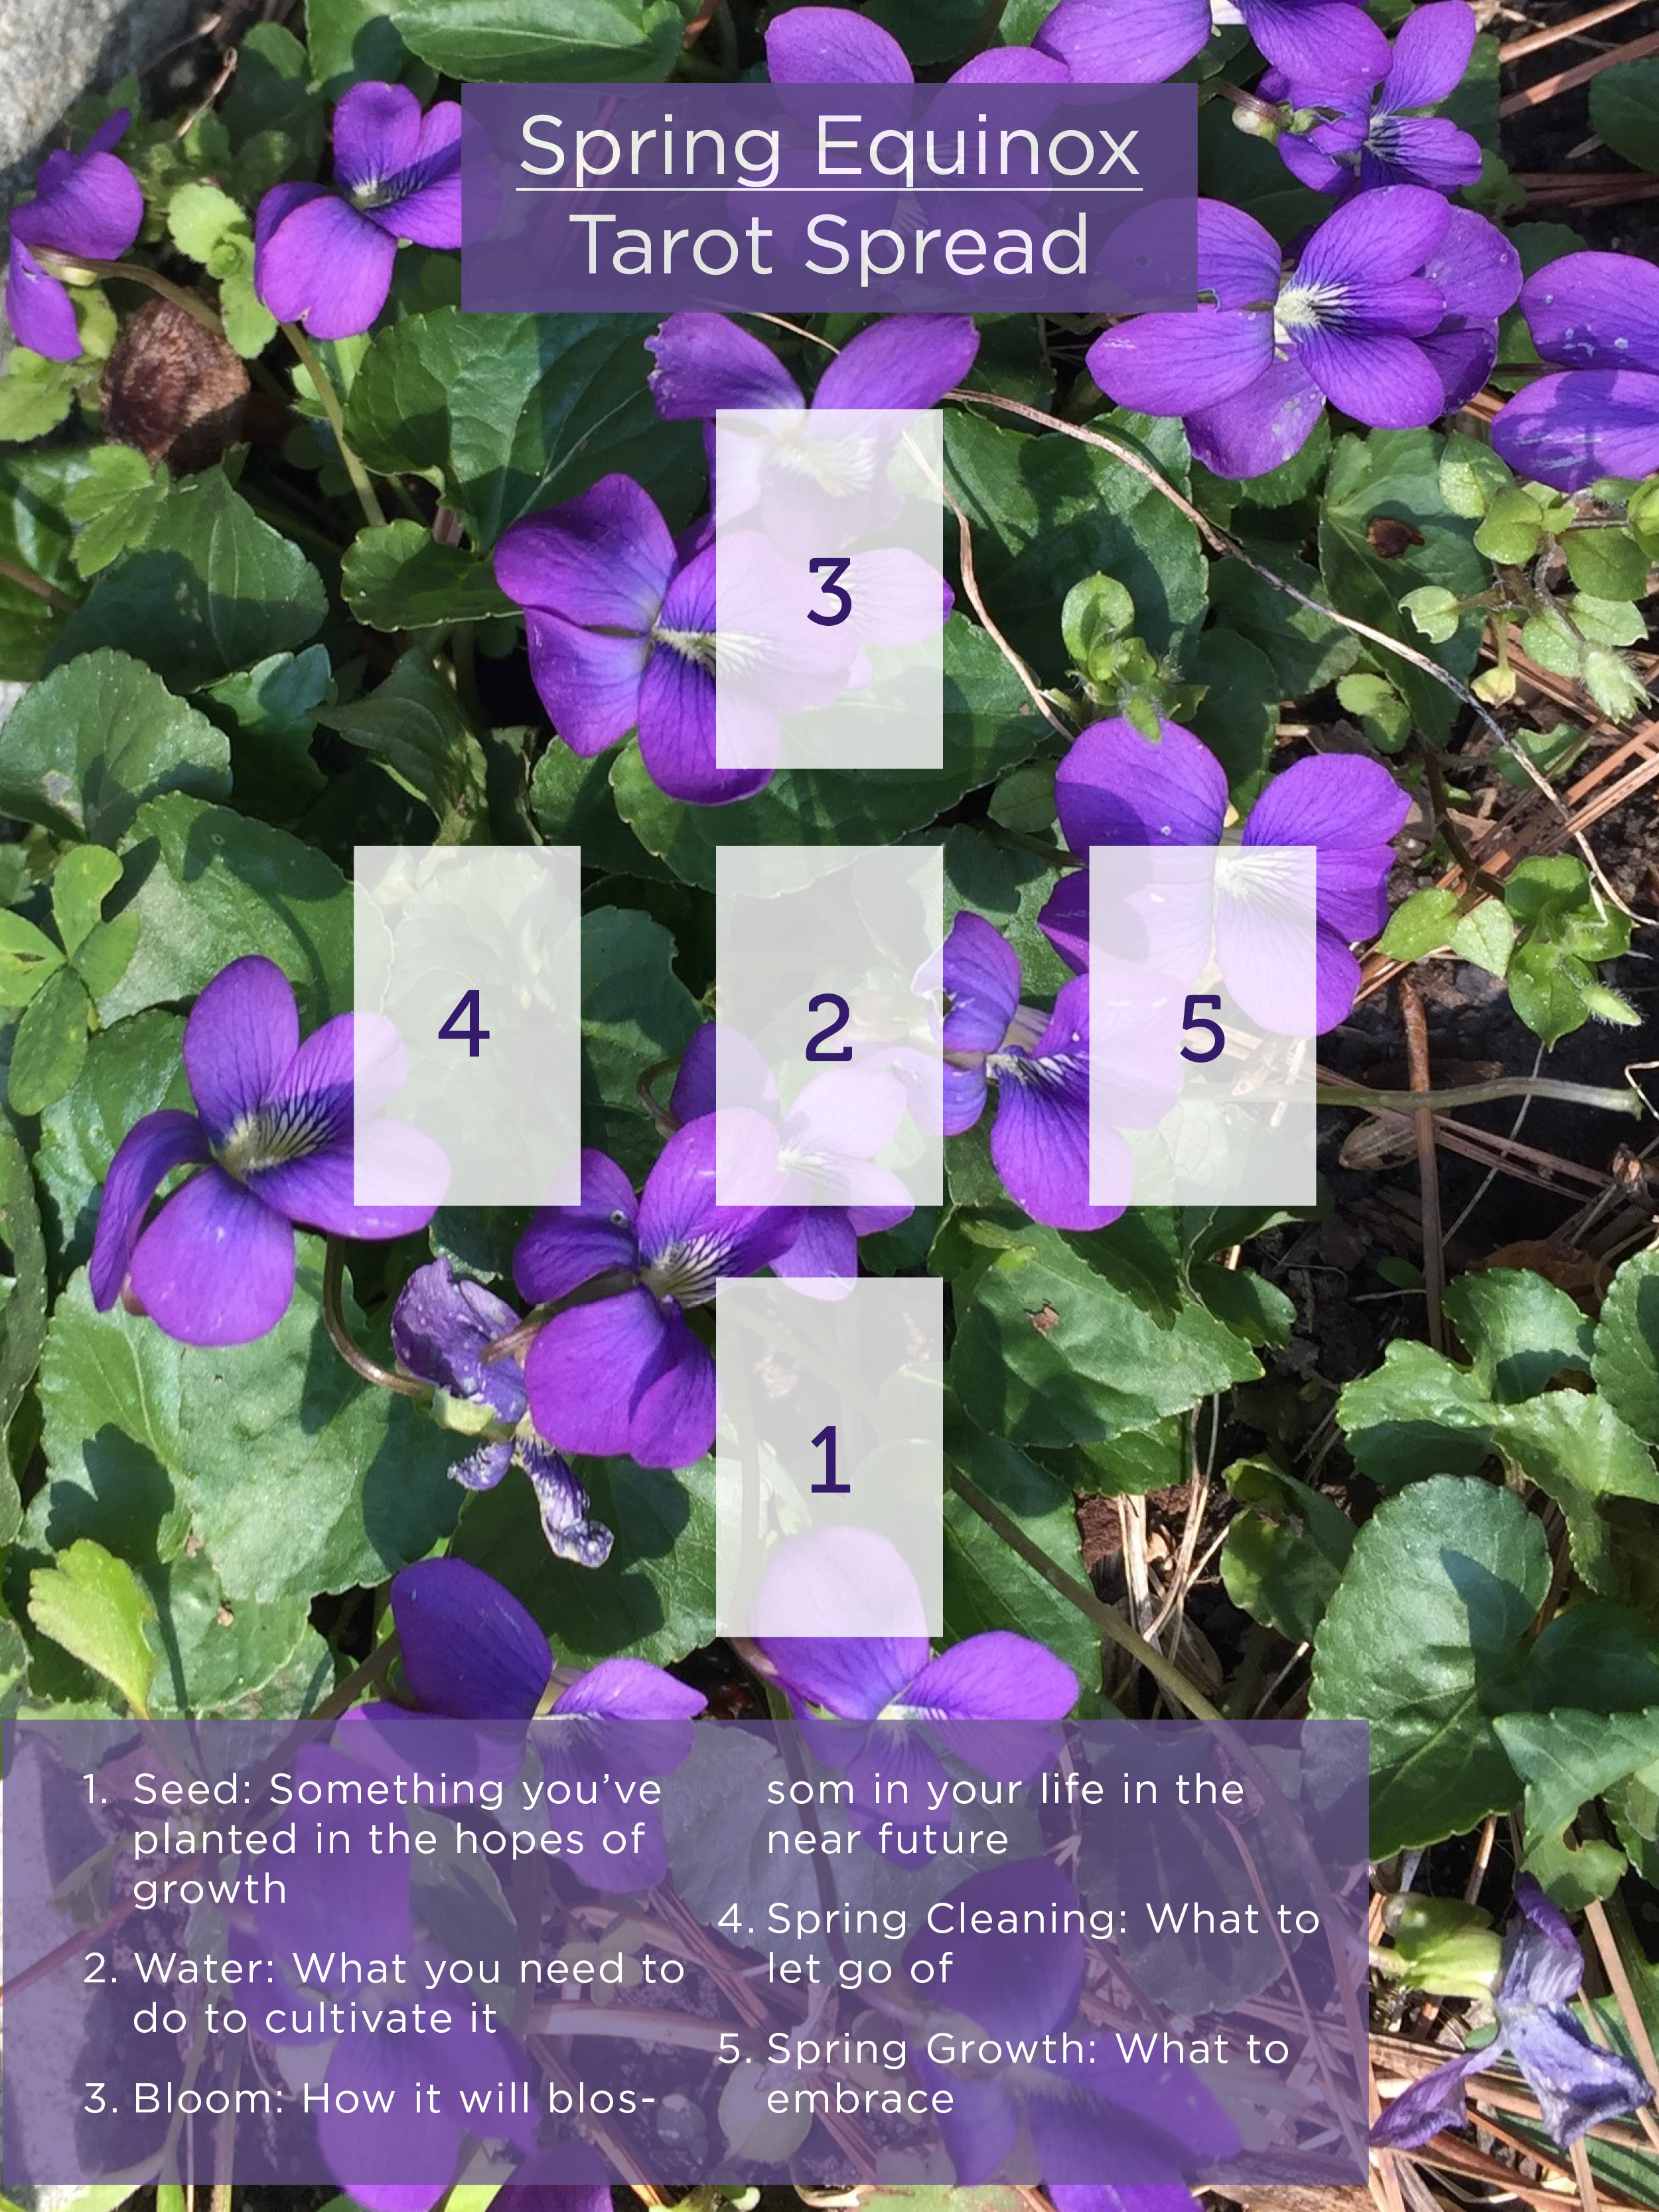 Spring Equinox Tarot Spread for Personal and Spiritual Growth